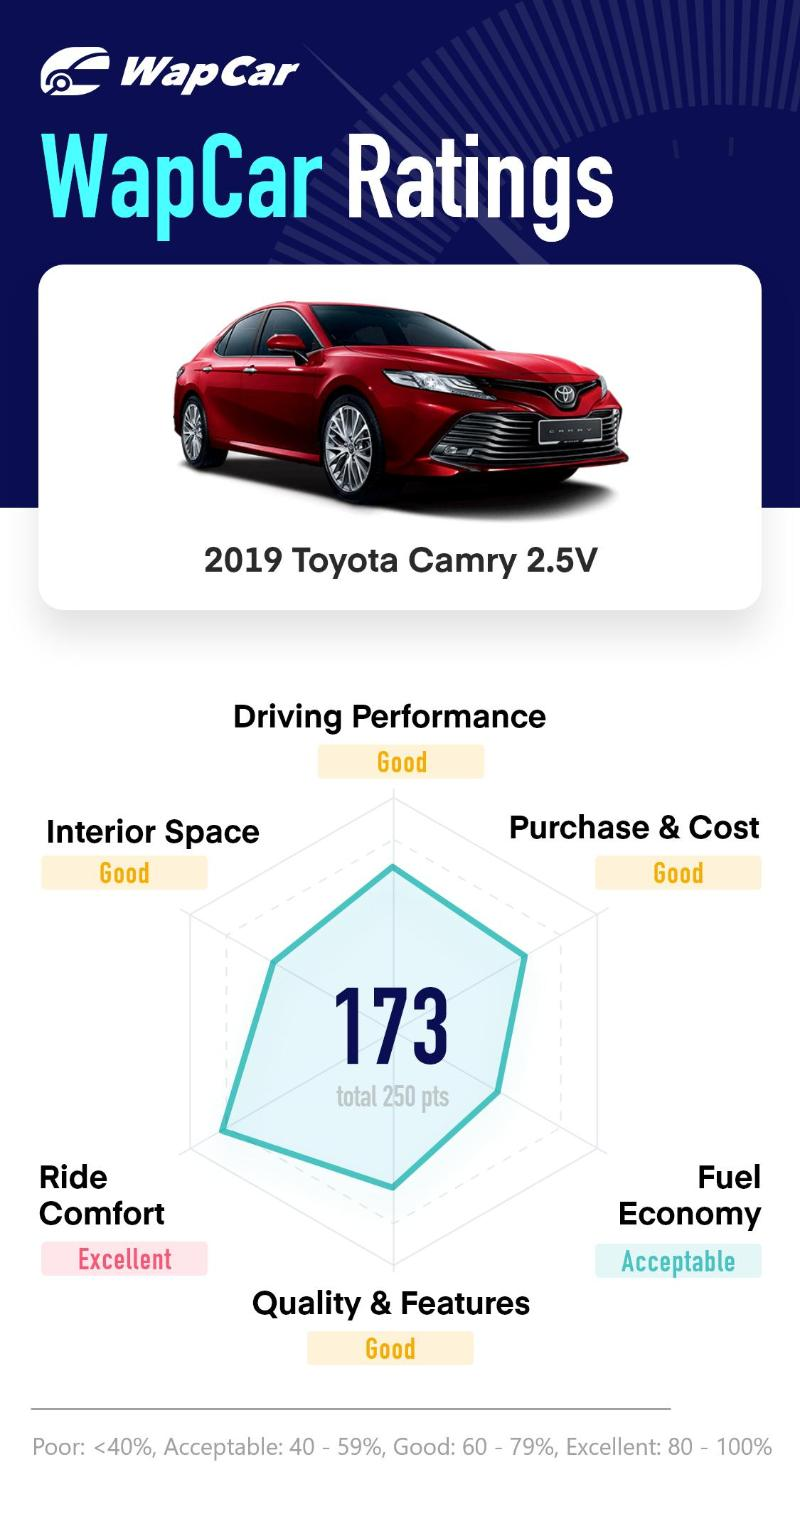 Ratings: 2019 Toyota Camry 2.5V - Top marks in comfort, 173 pts overall 02